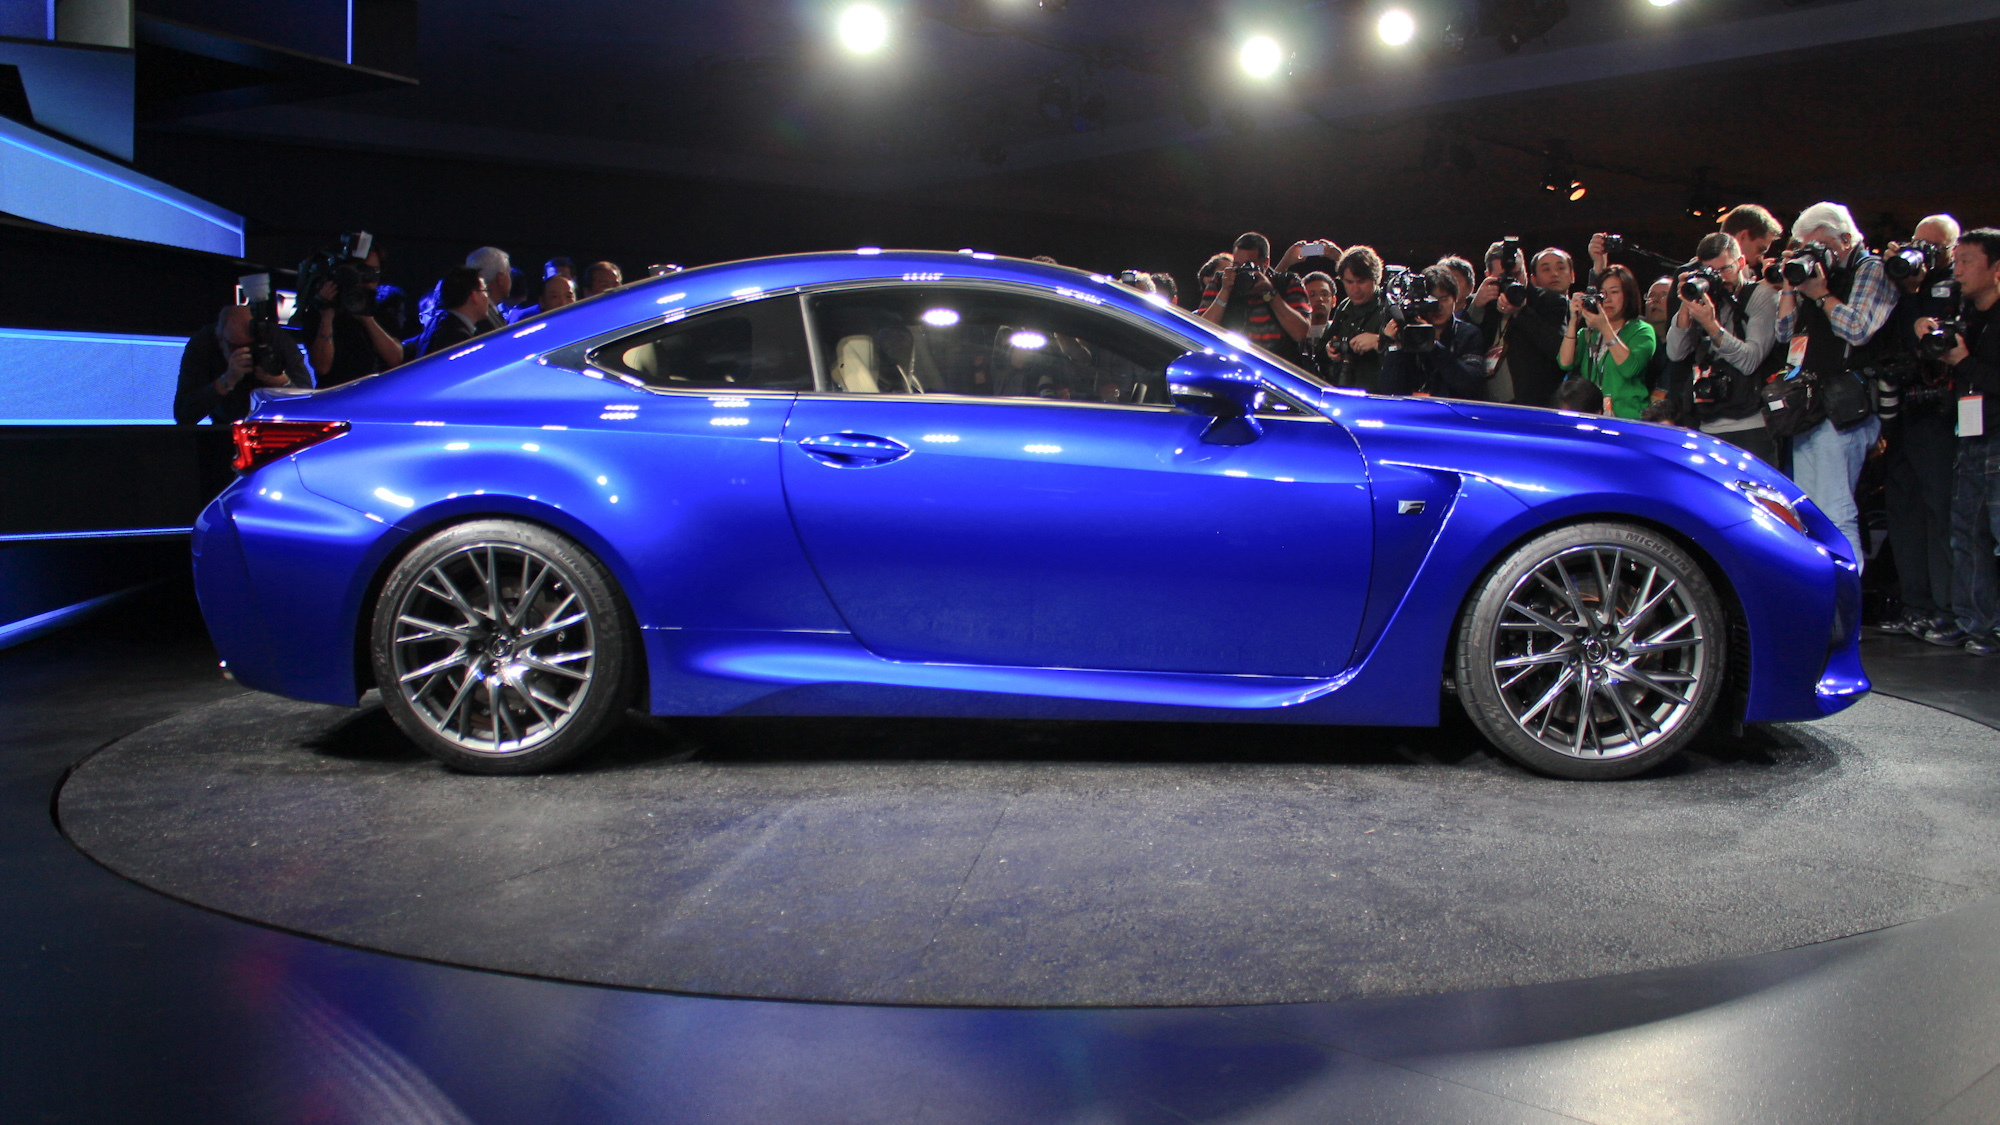 2015 Lexus RC F live photos, 2014 Detroit Auto Show